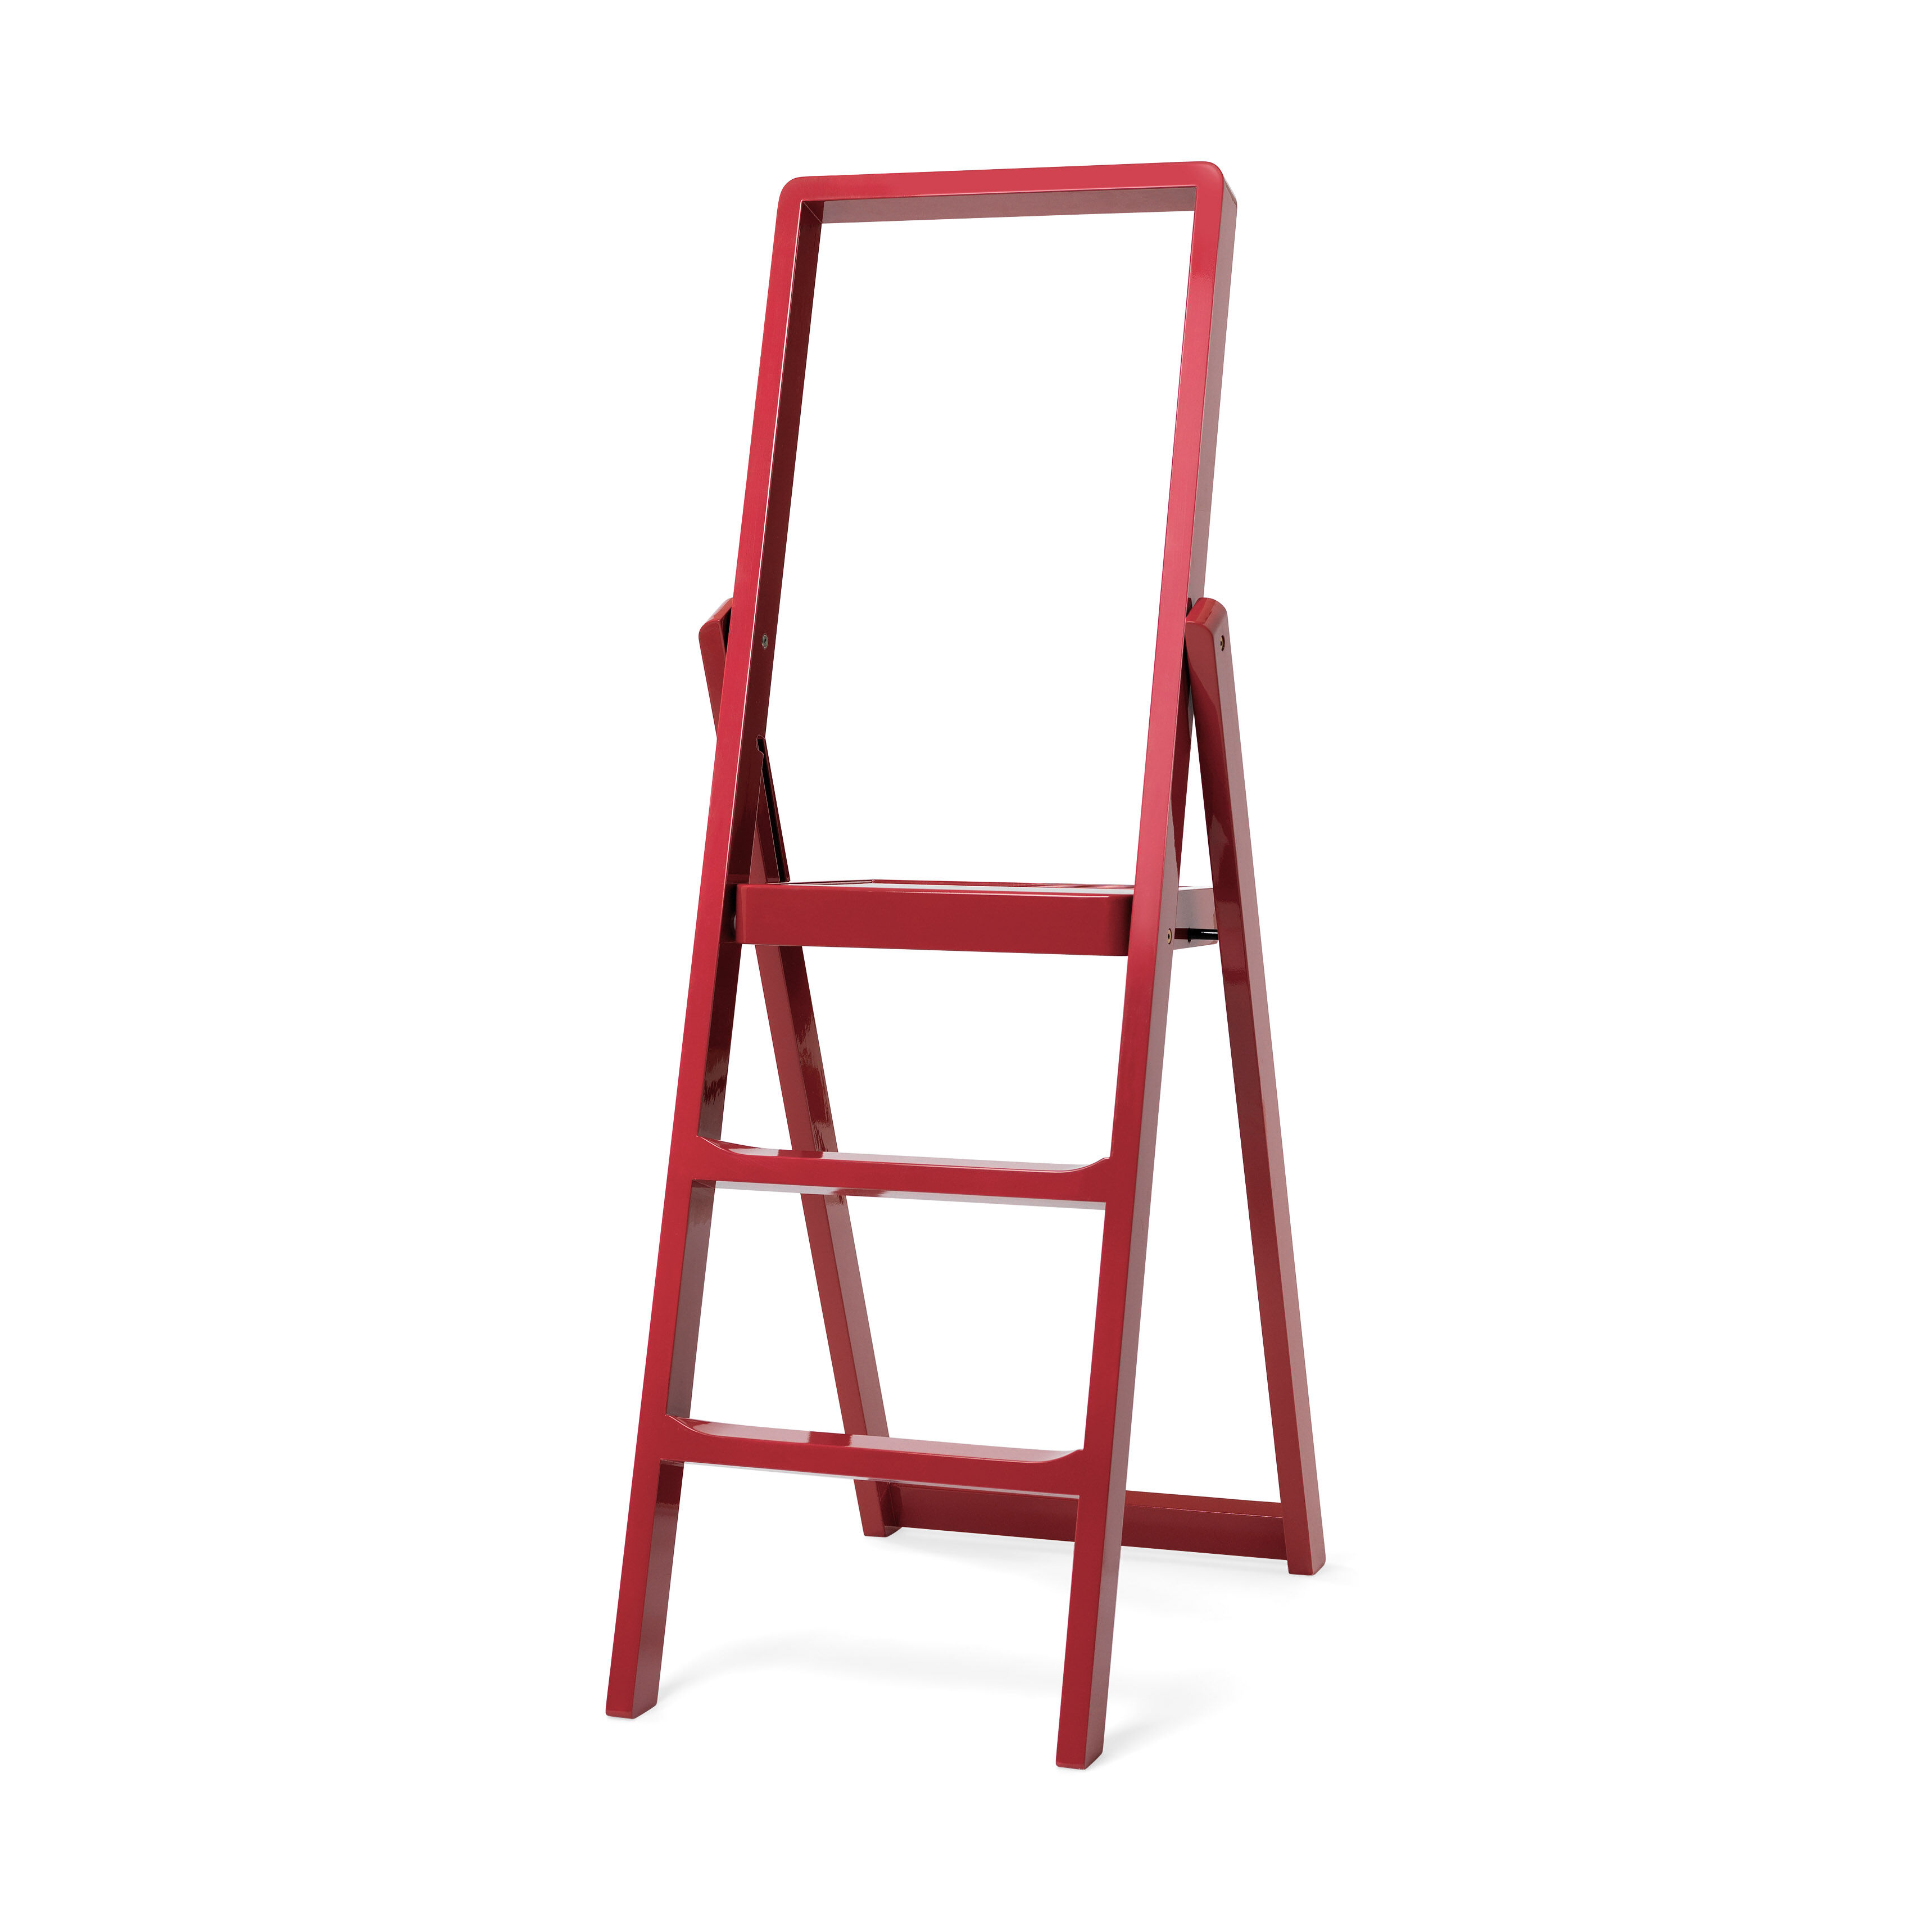 Step Ladder in color Red  sc 1 st  MoMA Design Store : slim step stool - islam-shia.org